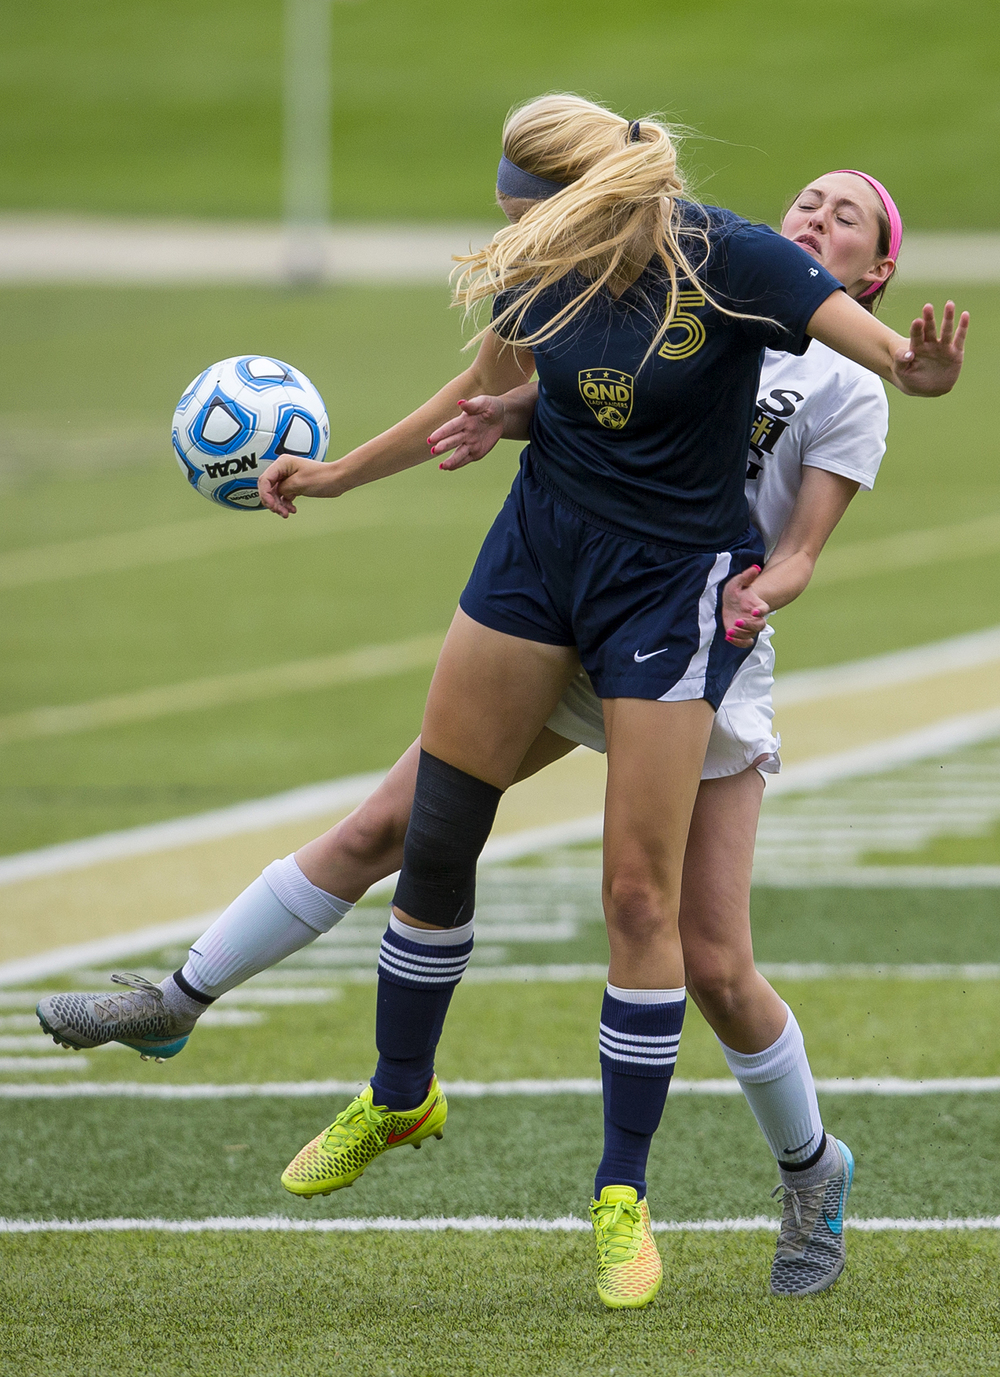 Sacred Heart-Griffin's Karmen Vicari-Endres collides with Qunicy Notre Dame's Audrea Fitch during the Class 1A girls sectional soccer at Sacred Heart-Griffin Friday, May 20, 2016. Ted Schurter/The State Journal-Register